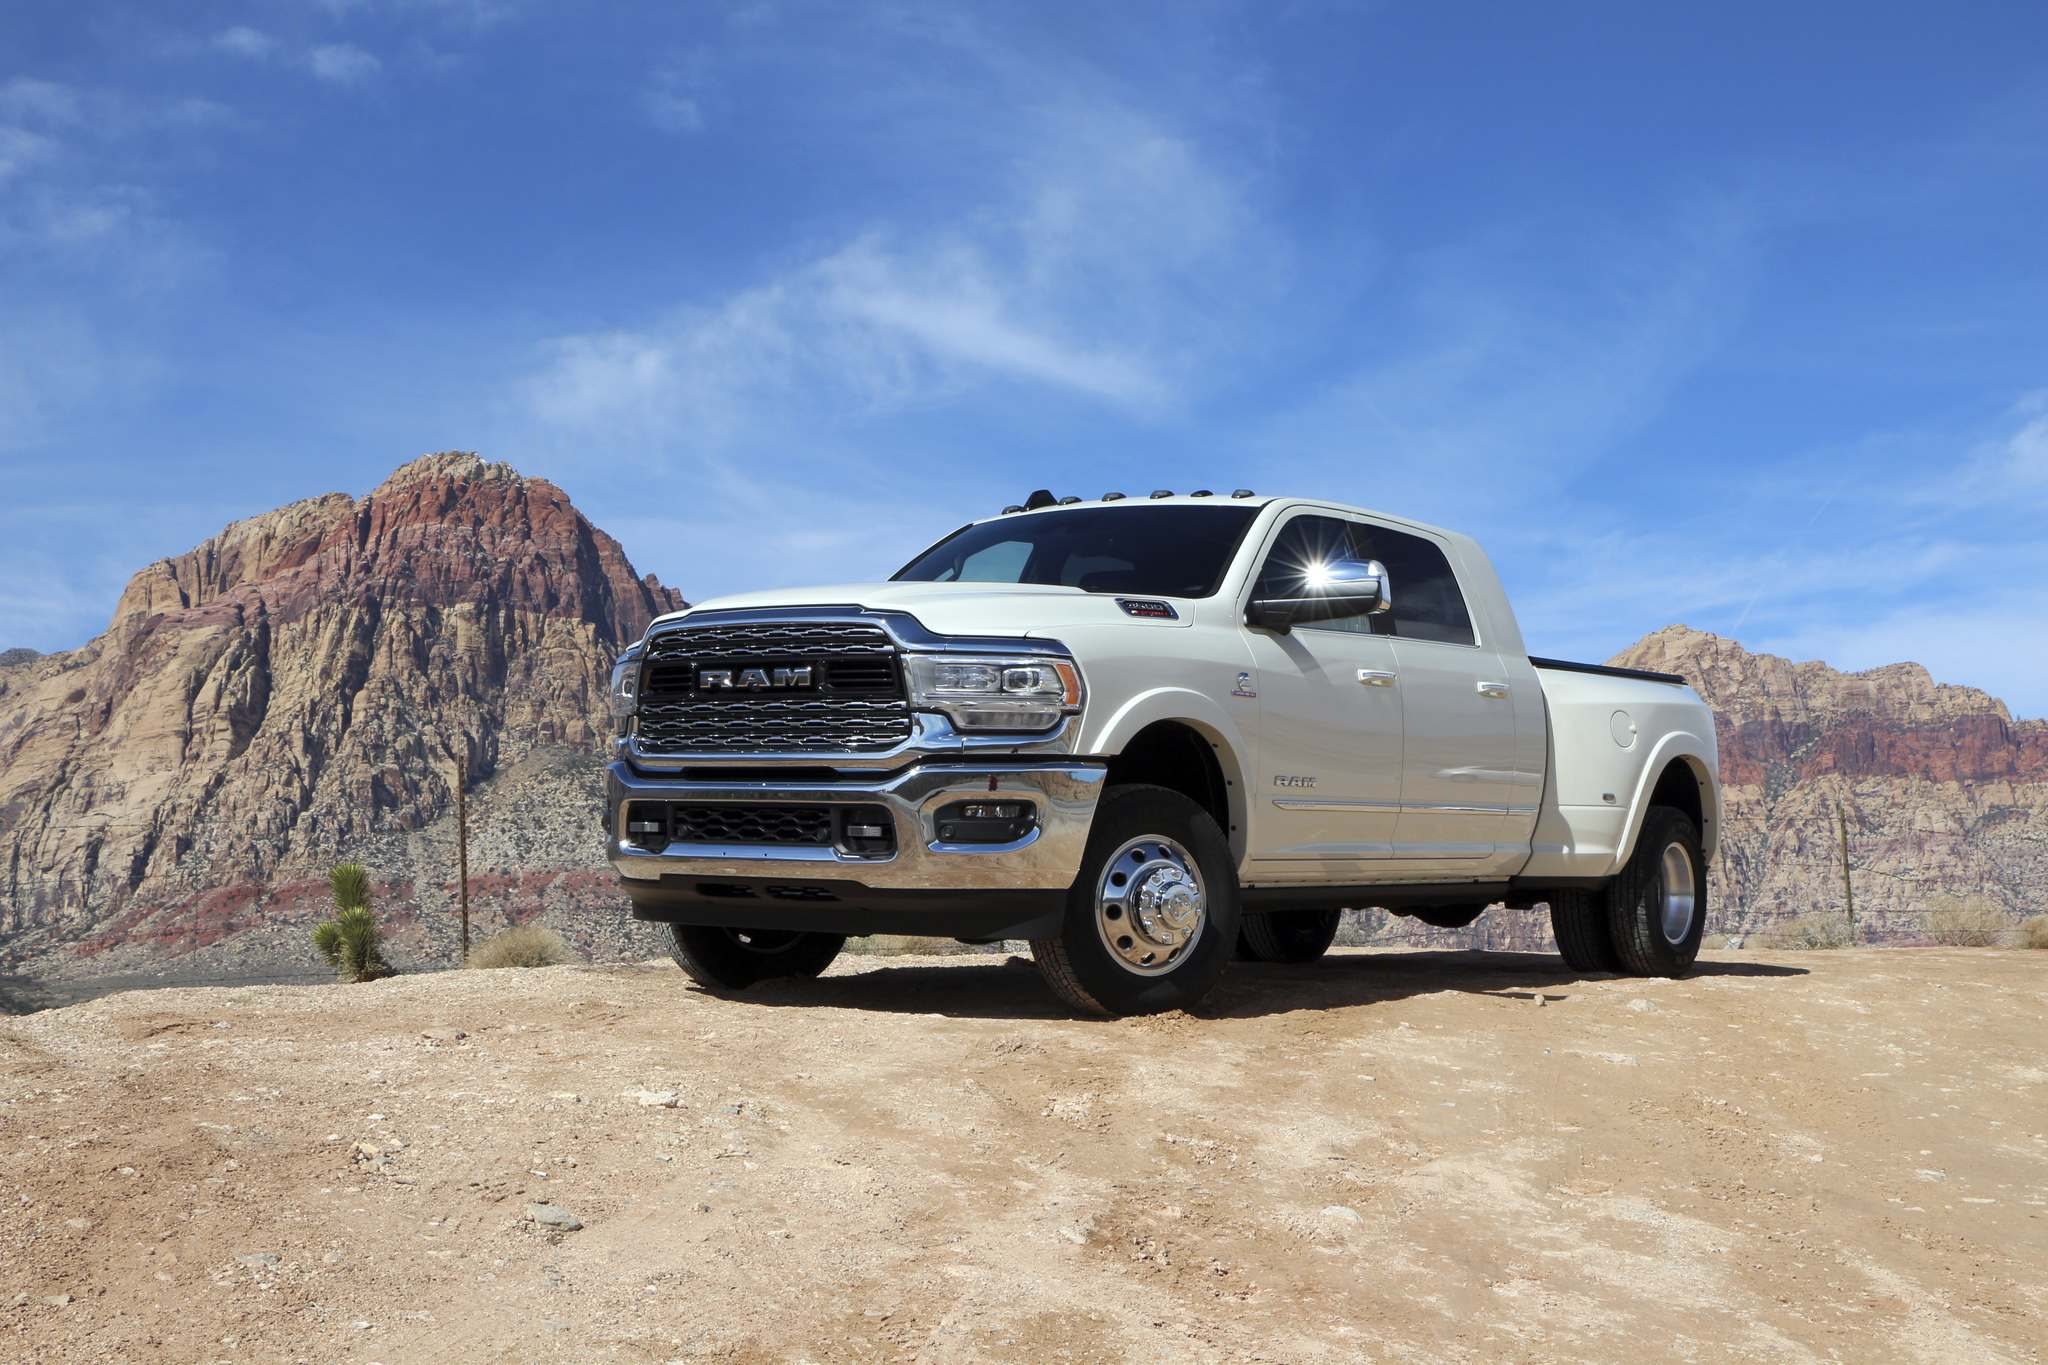 Harry Pegg / Winnipeg Free PressThe 2019 Ram HD is the latest model to tackle the competitive heavy-duty pickup truck market. Featuring opulent interior choices and powertrains able to tow as much as 35,100 pounds, the Ram HD lives up to its name.